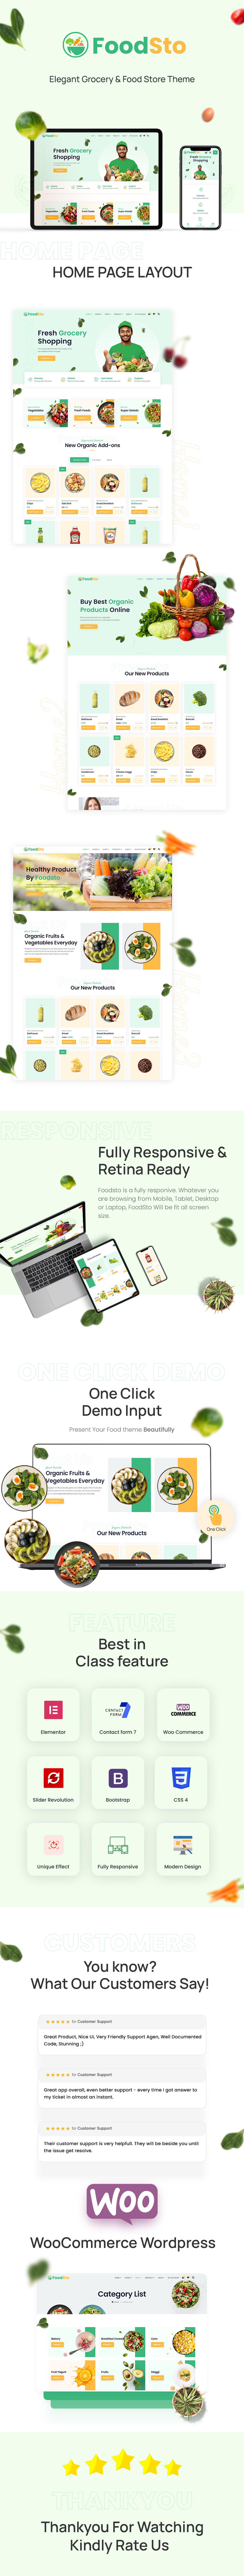 Grocery and Food Store WordPress Theme | Foodsto | Iqonic Design grocery and food store wordpress theme Foodsto live preview1